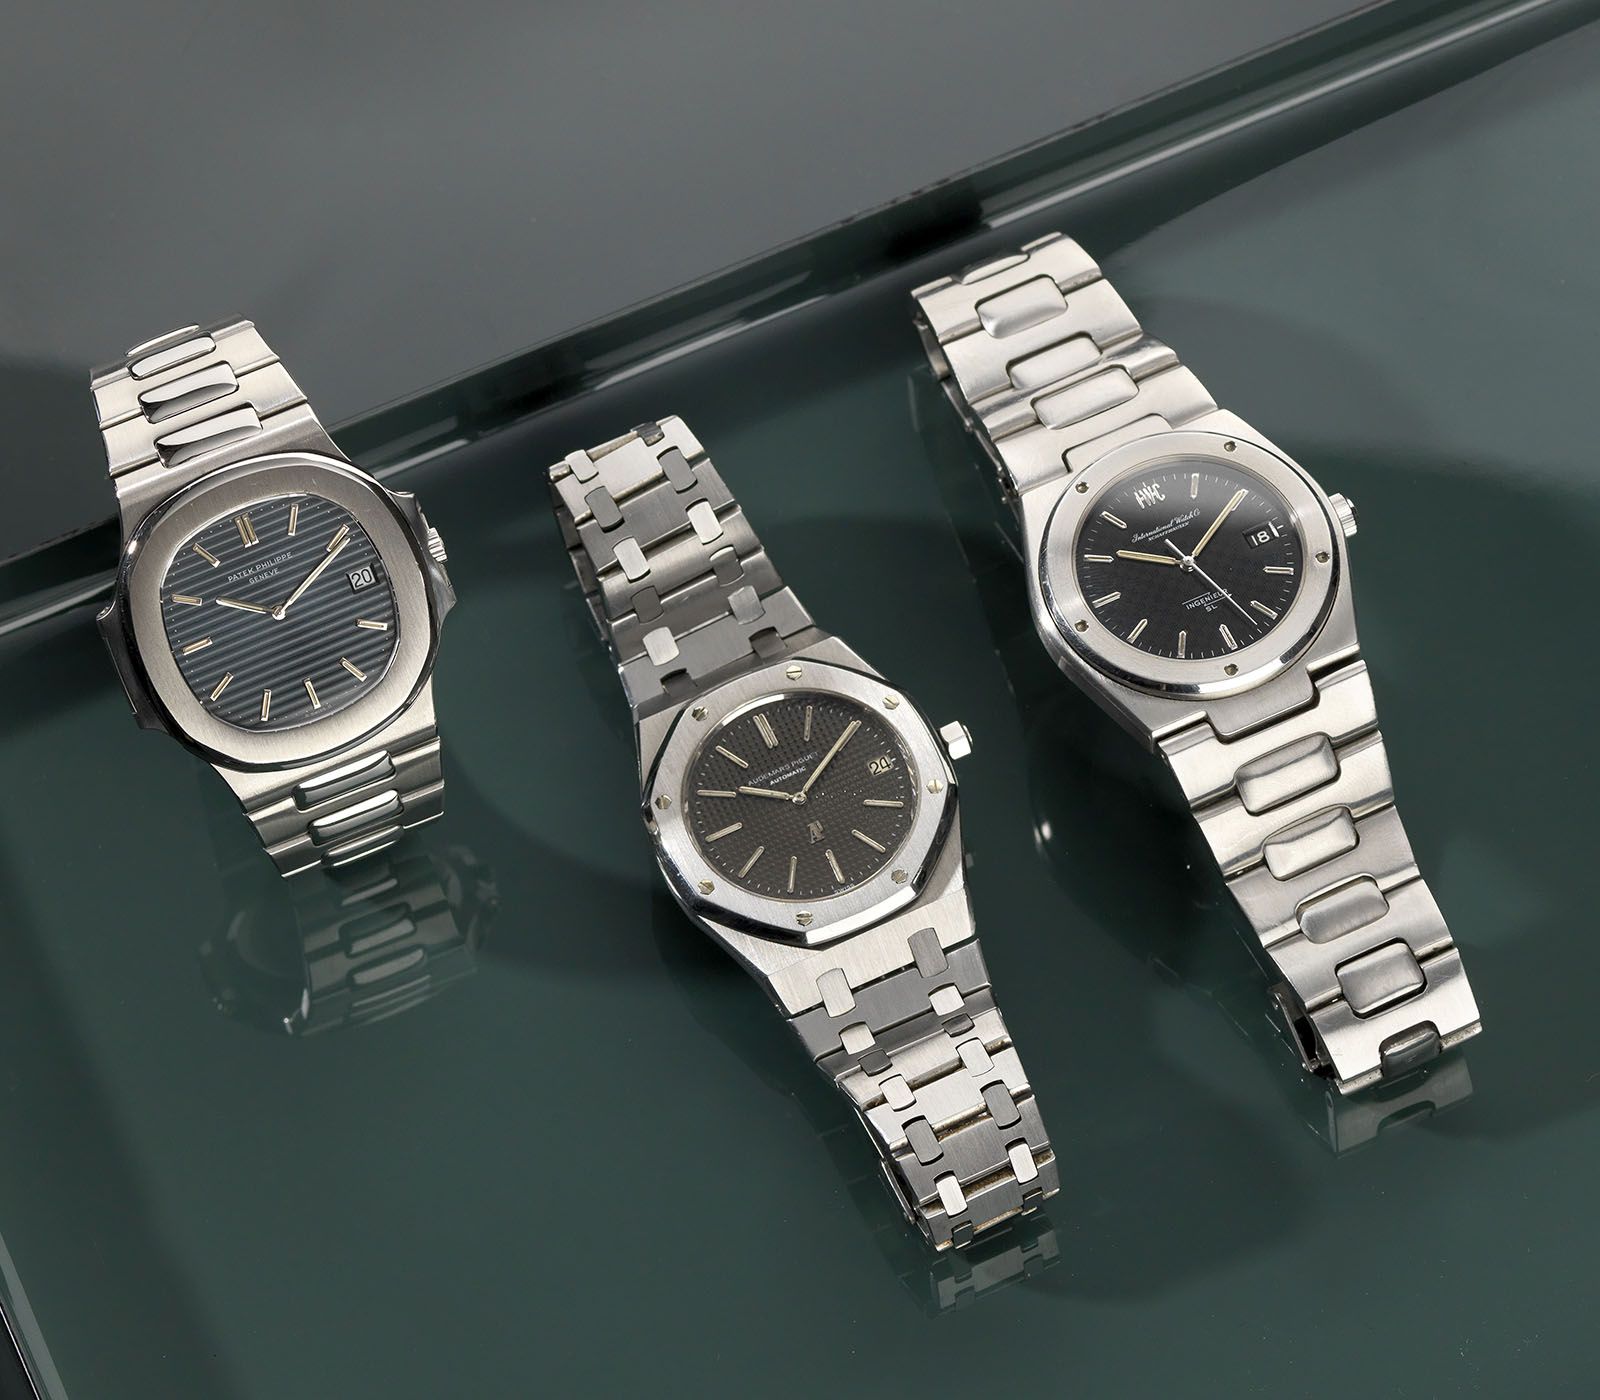 Conversation Time: Mr G, The Genta Collector, Audemars Piguet Royal Oak A Series, Patek 3700 Nautilus, IWC Ingenieur